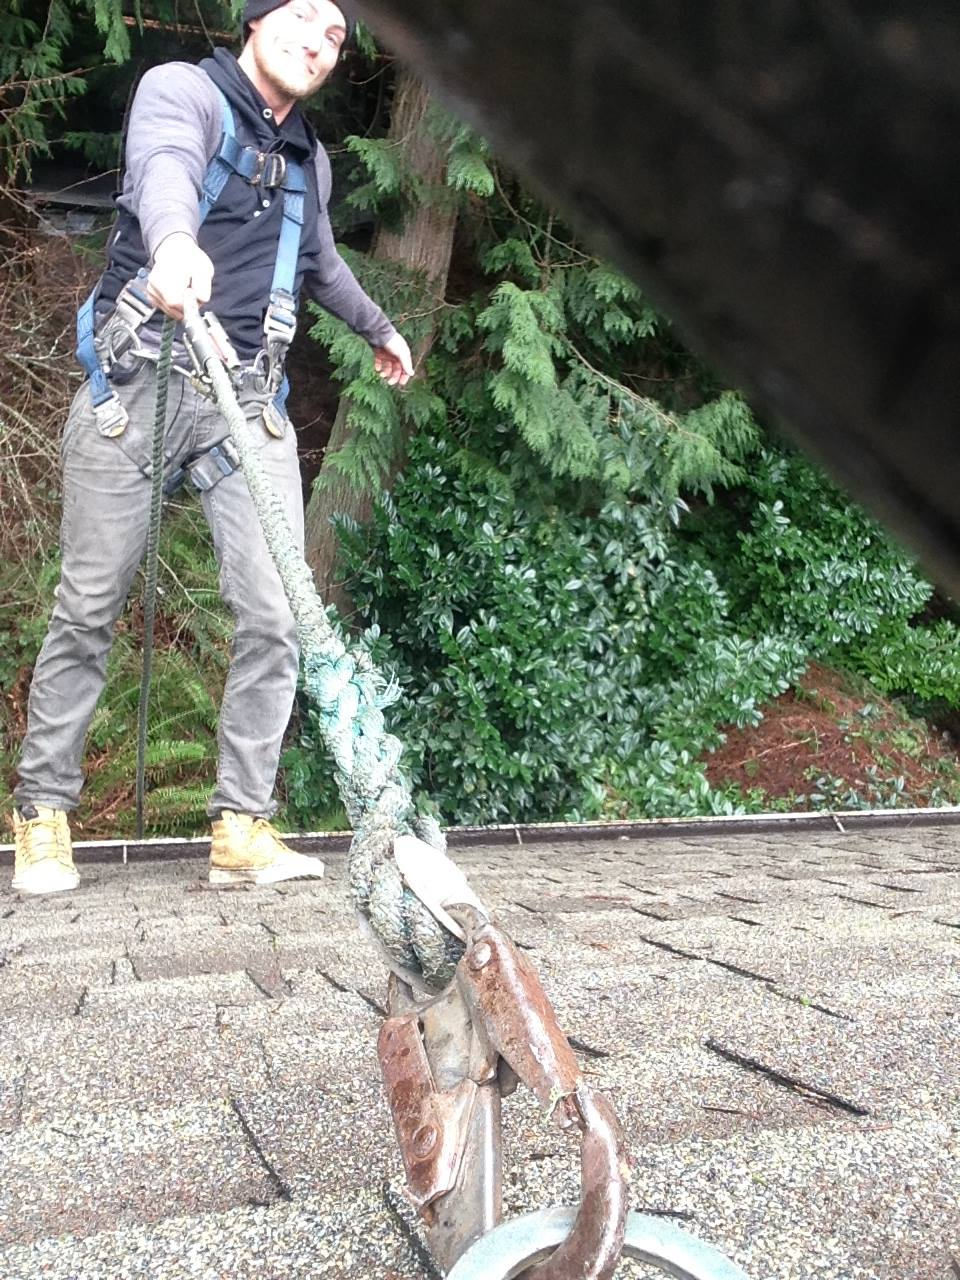 Home cleaning, home improvement, gutter cleaning, moss removal services providers in Bainbridge. Call us now